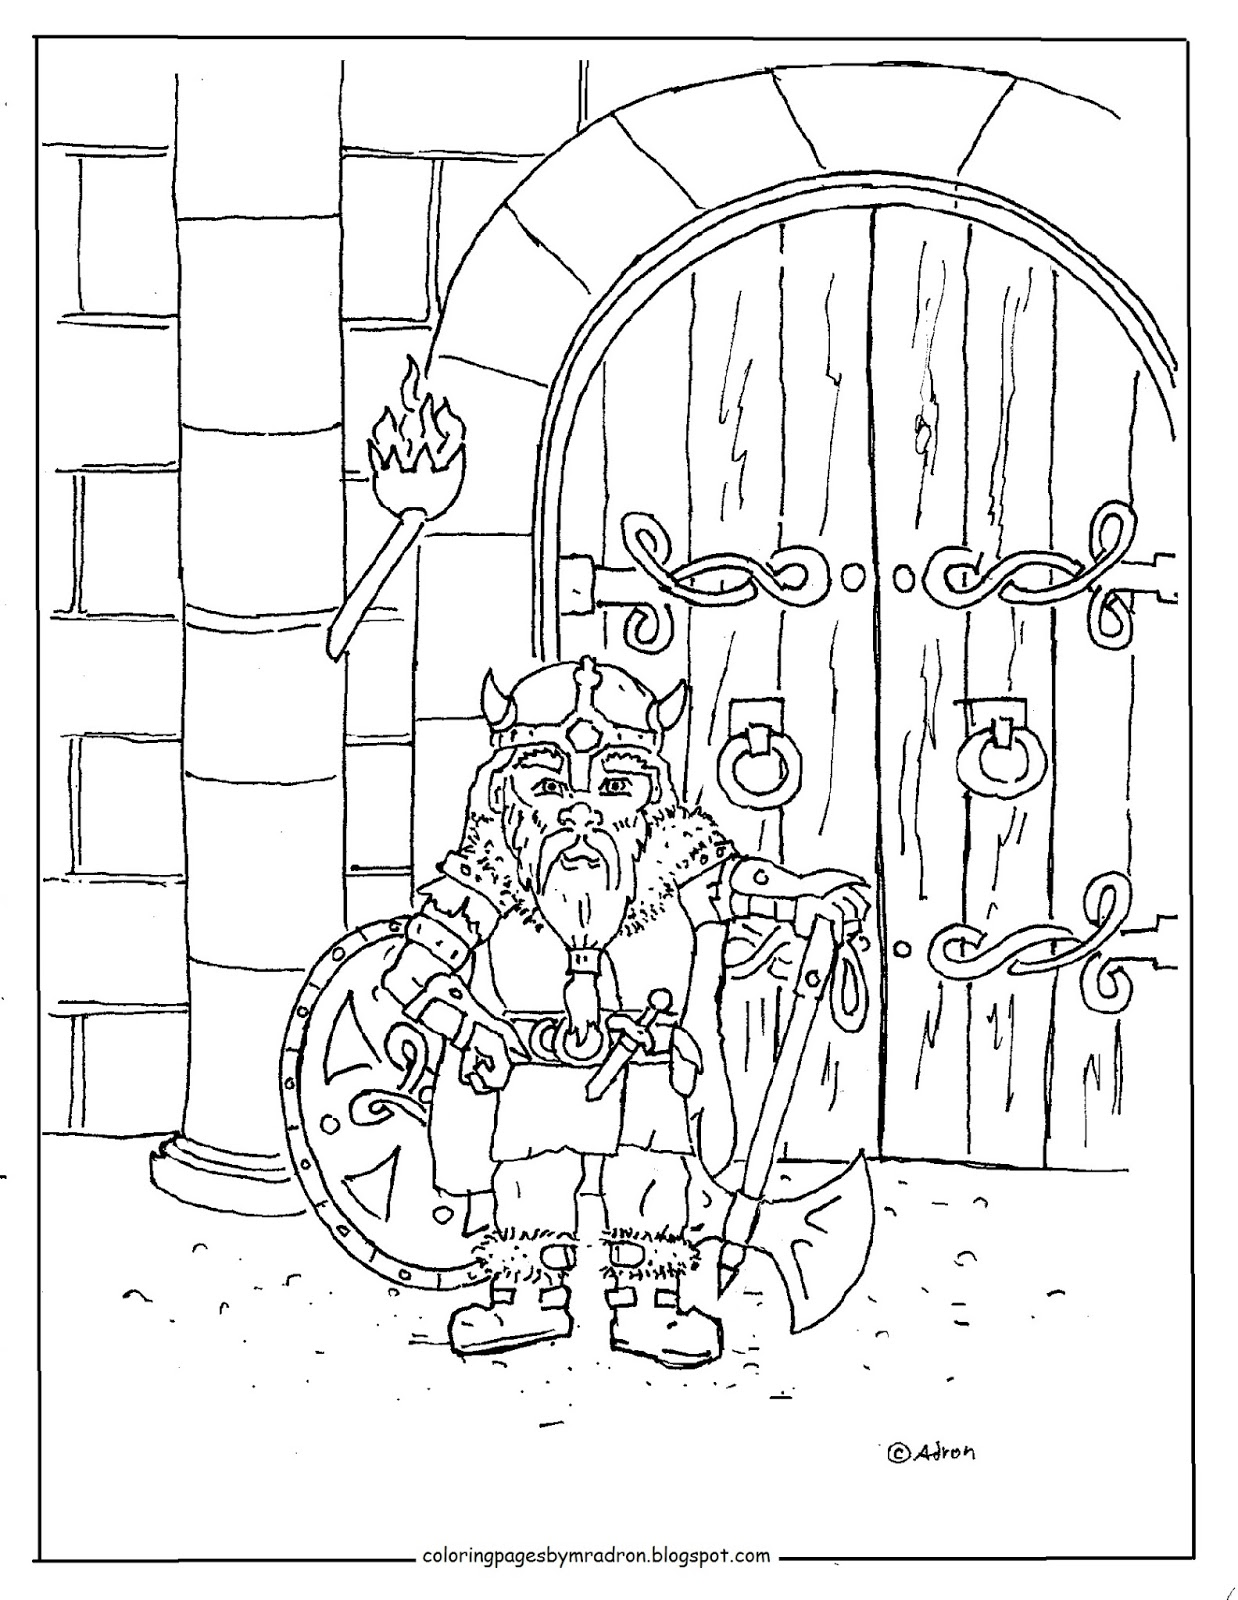 warrior coloring pages for kids | Coloring Pages for Kids by Mr. Adron: Printable Warrior ...